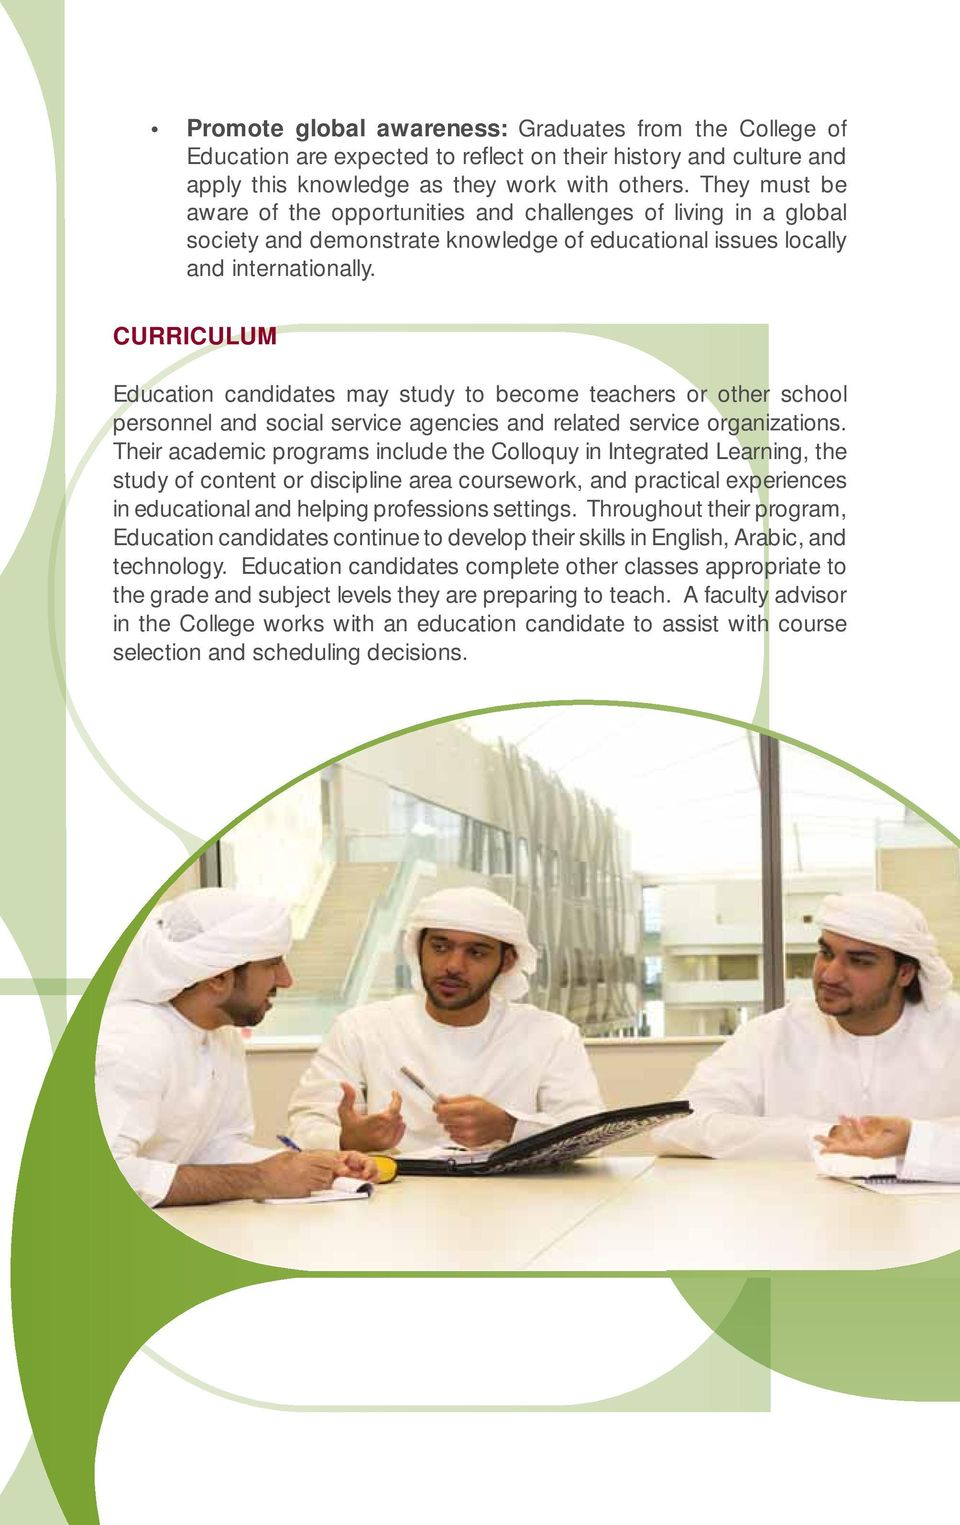 CURRICULUM Education candidates may study to become teachers or other school personnel and social service agencies and related service organizations.